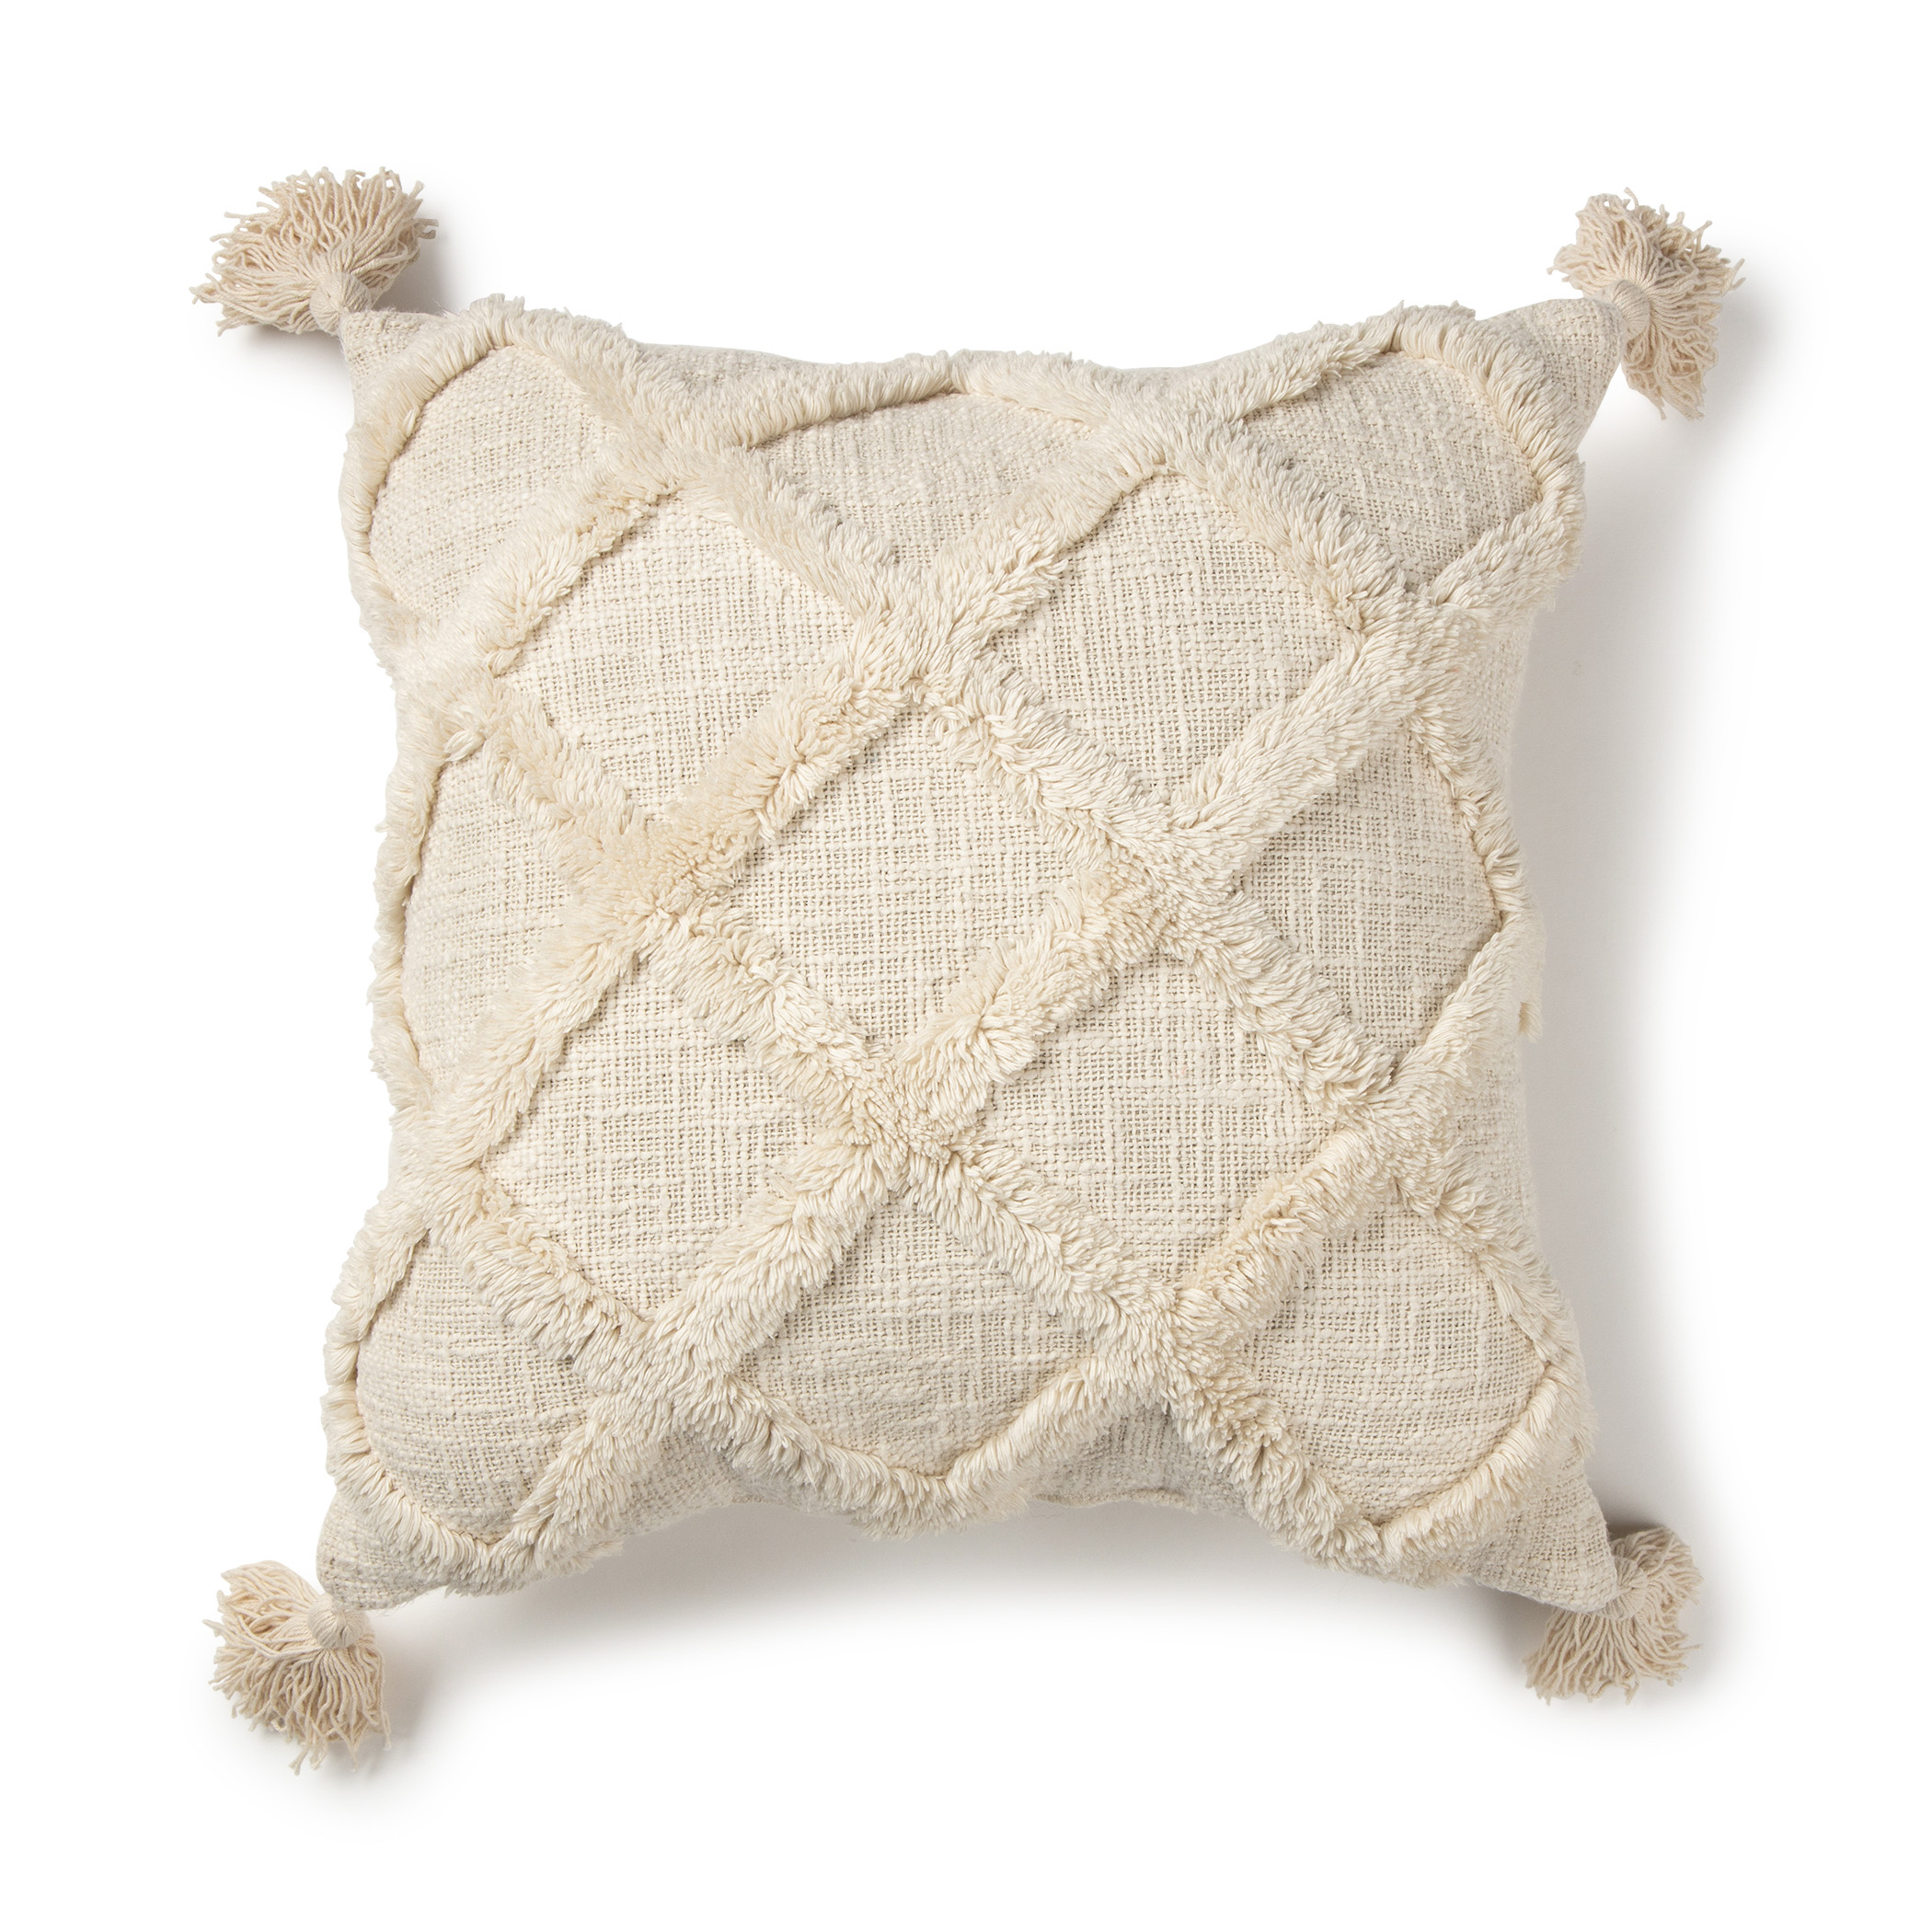 2020 new design tufted cushion cover knitted sofa cushion cover knit tufted pillow case with tassel buy popular model style cotton canvas tufting